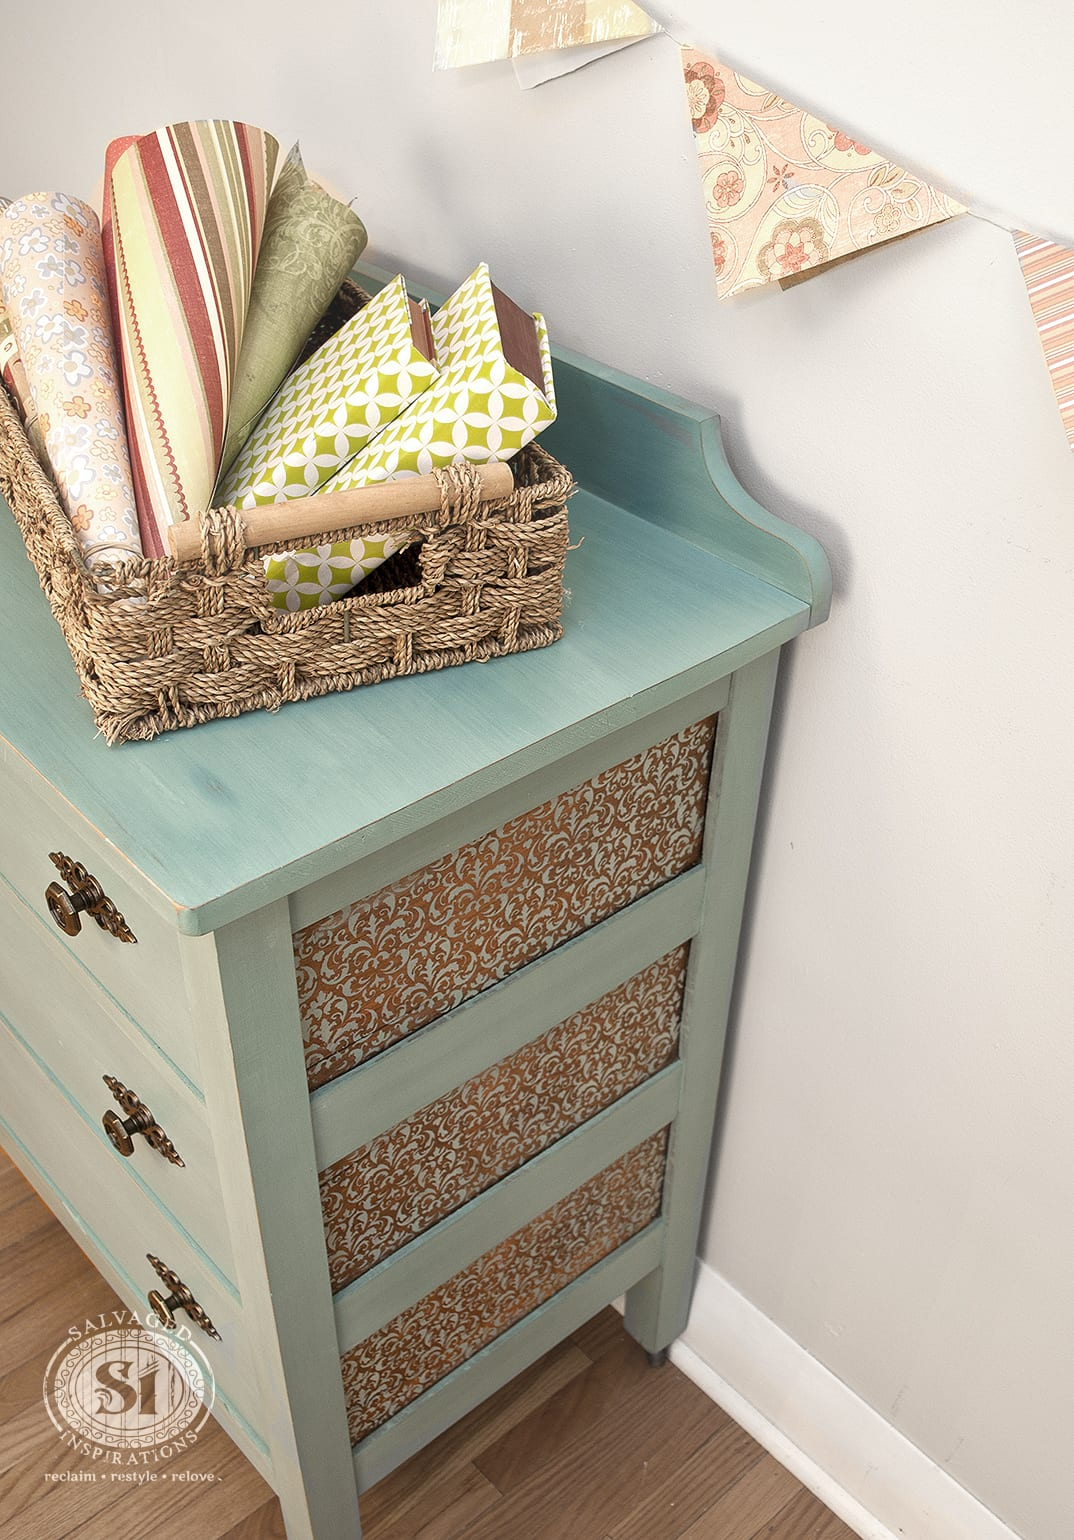 Peek-A-Boo Design: Stencil with Milk Paint!